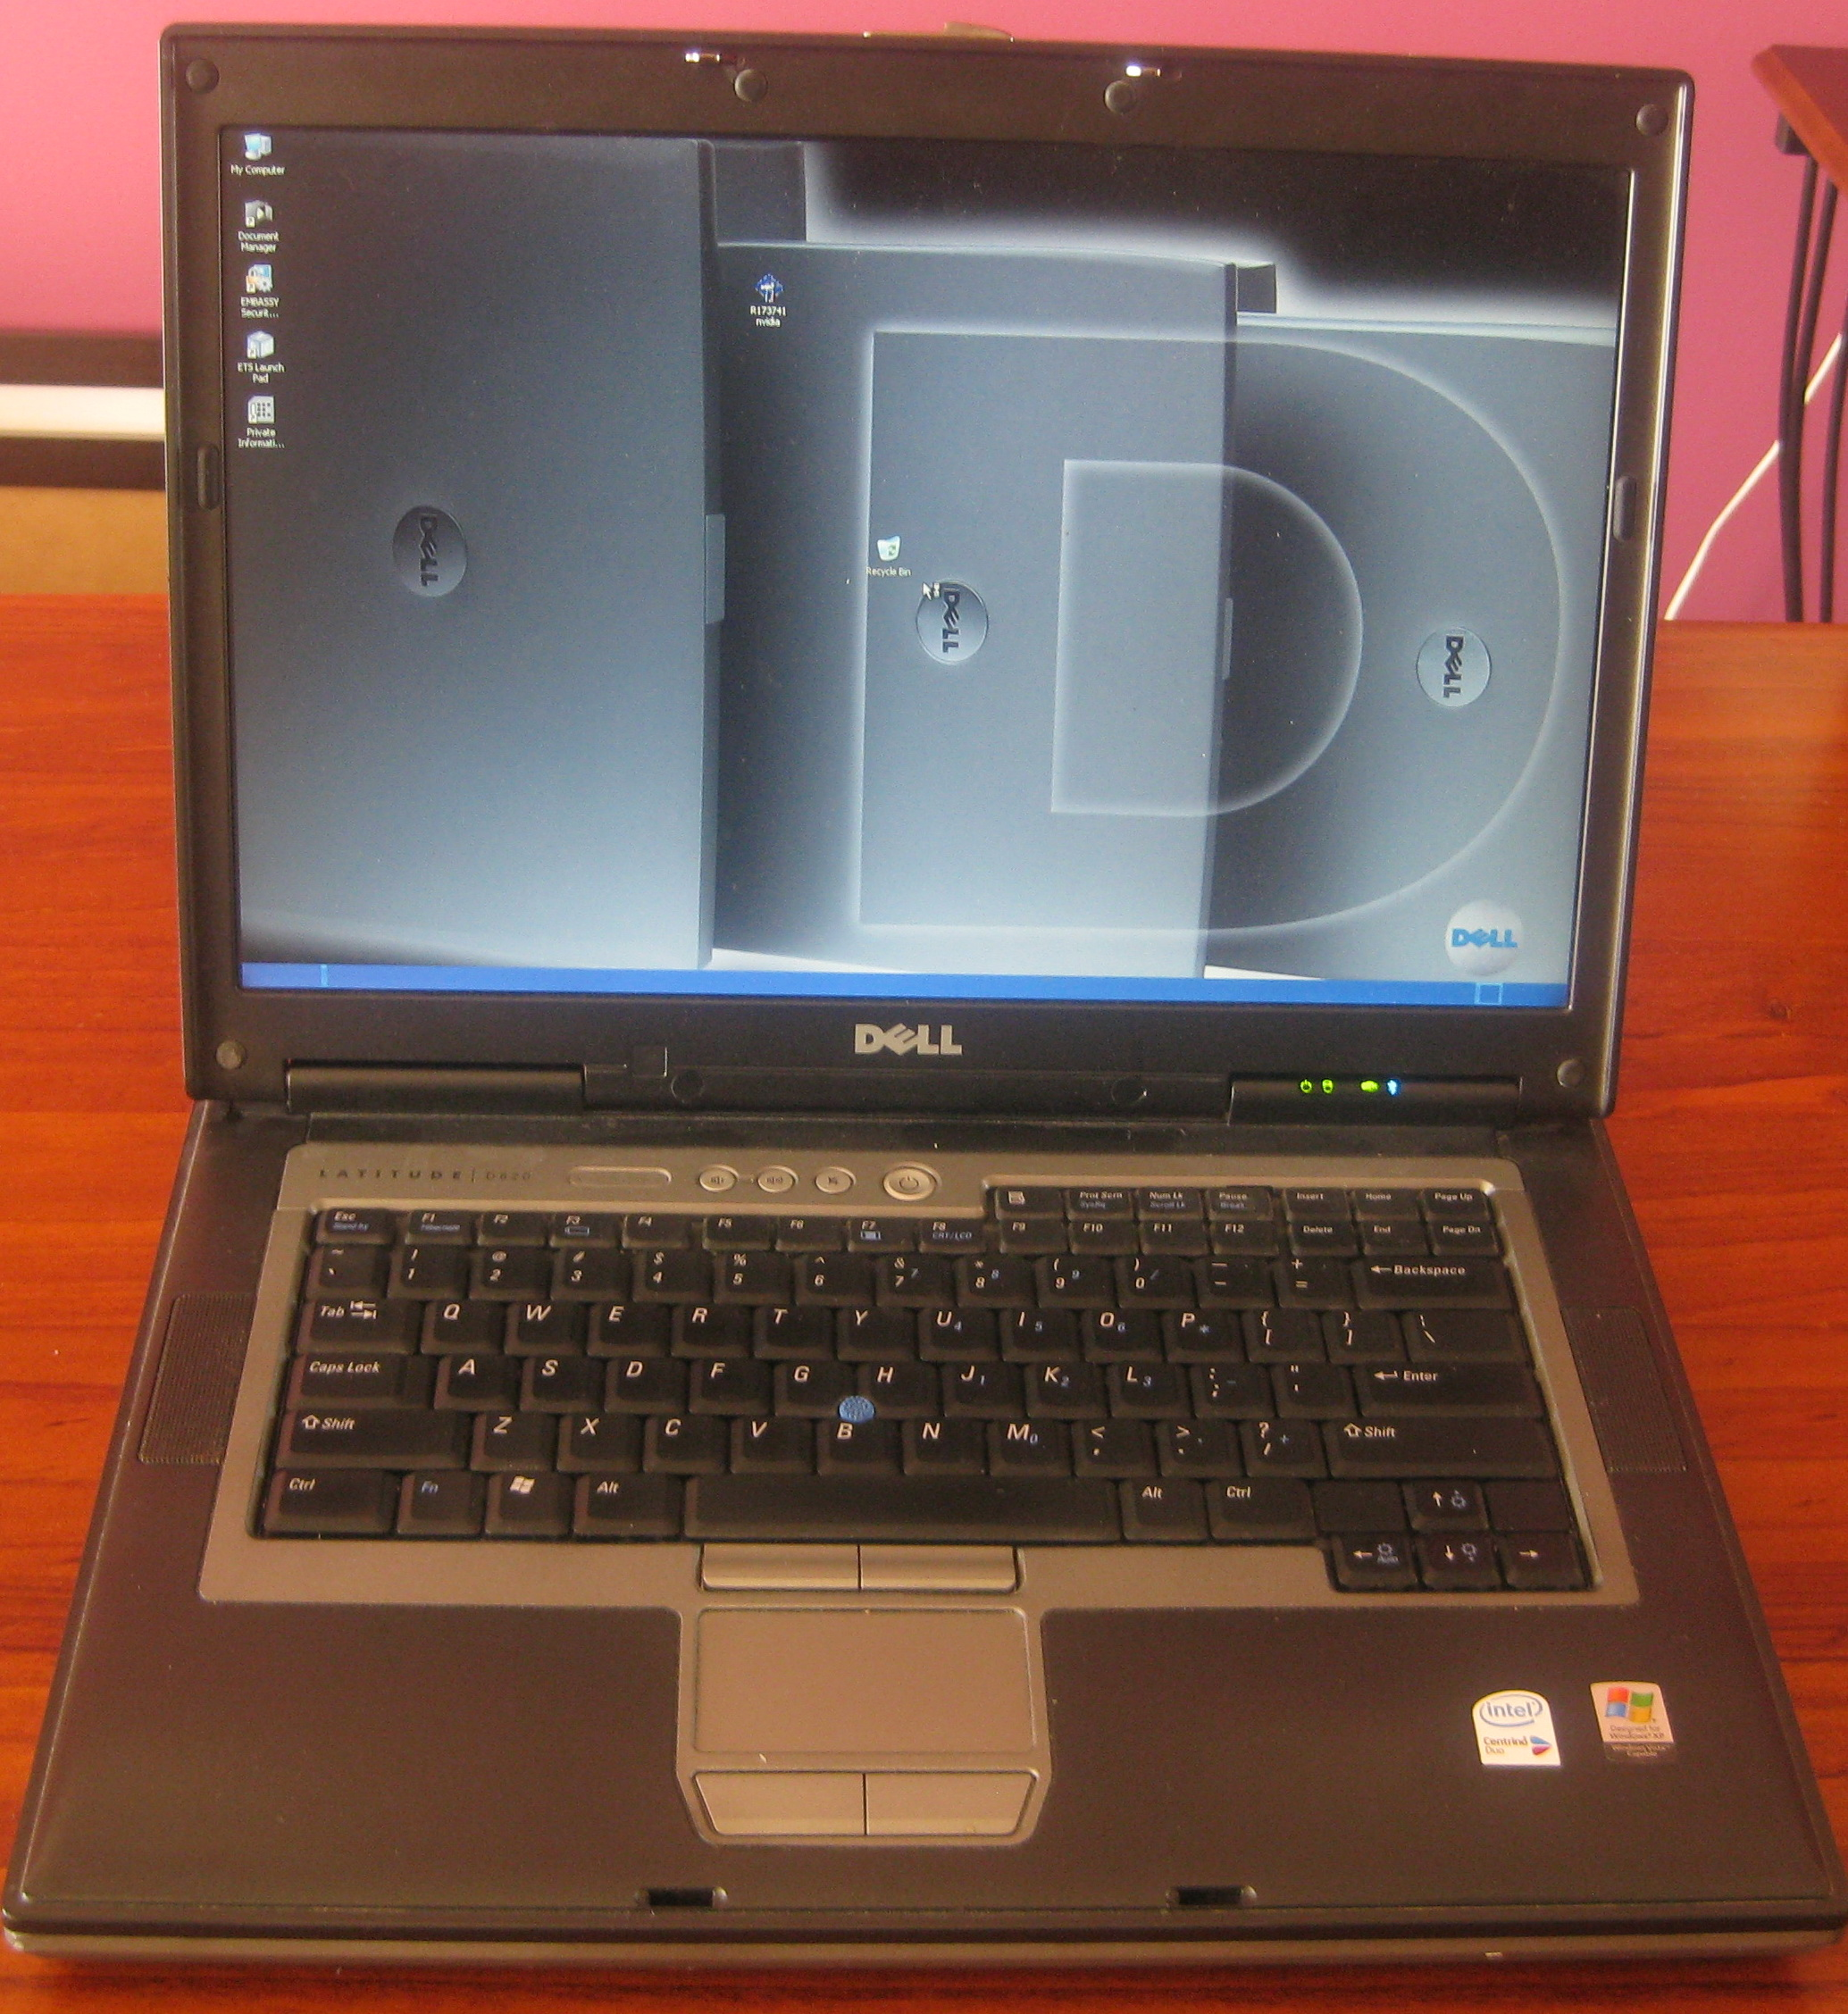 DELL LATTITUDE D820 C2D 2.33 Ghz